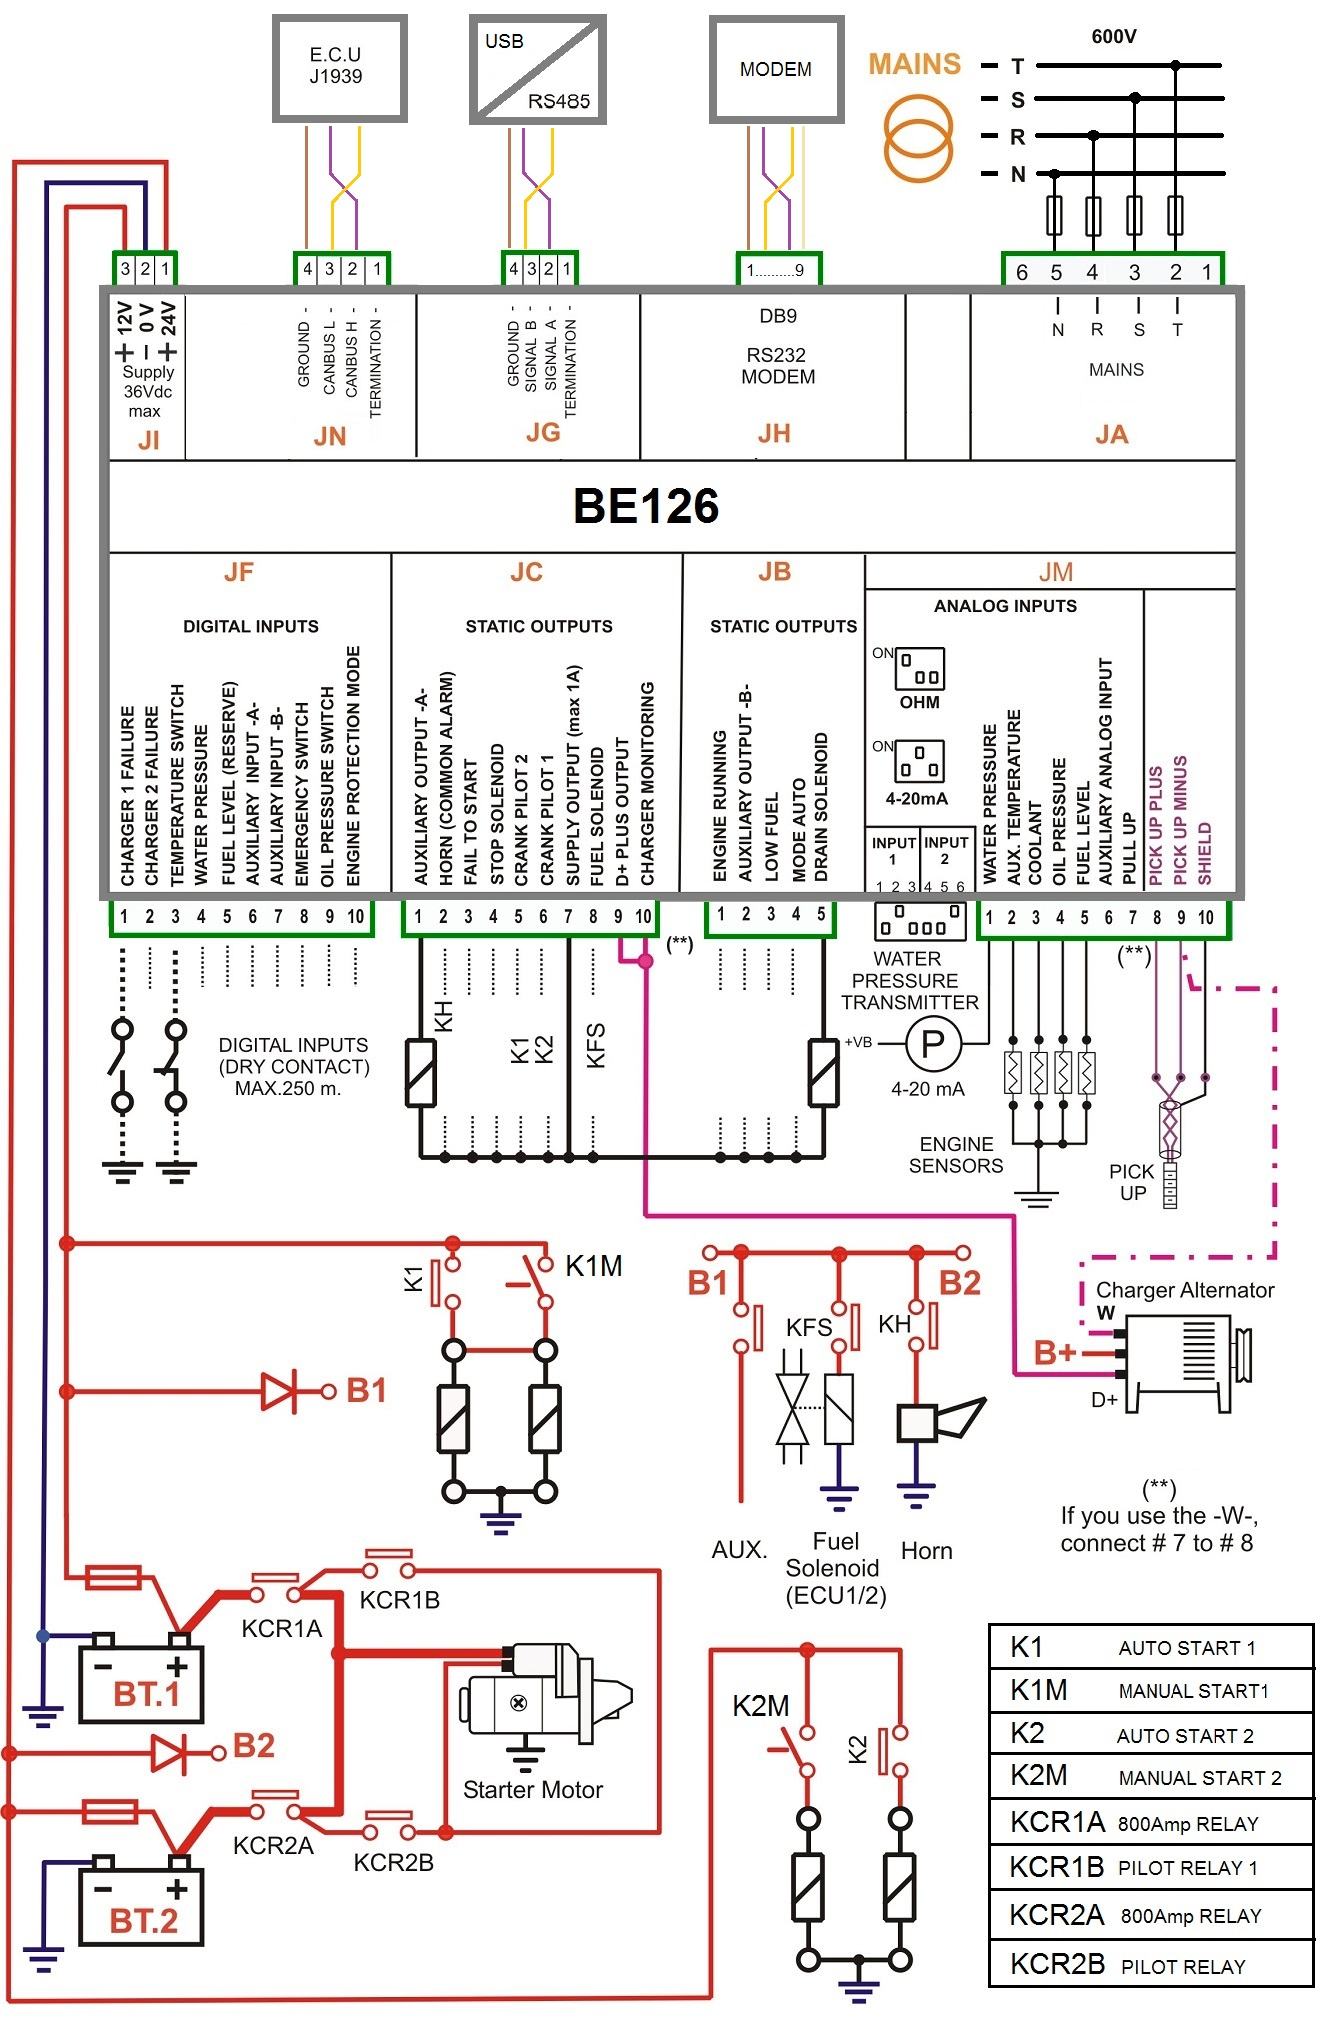 fire pump controller wiring diagram genset controller rh bernini design com control wiring diagram of star delta starter pdf control wiring diagram of star delta starter pdf